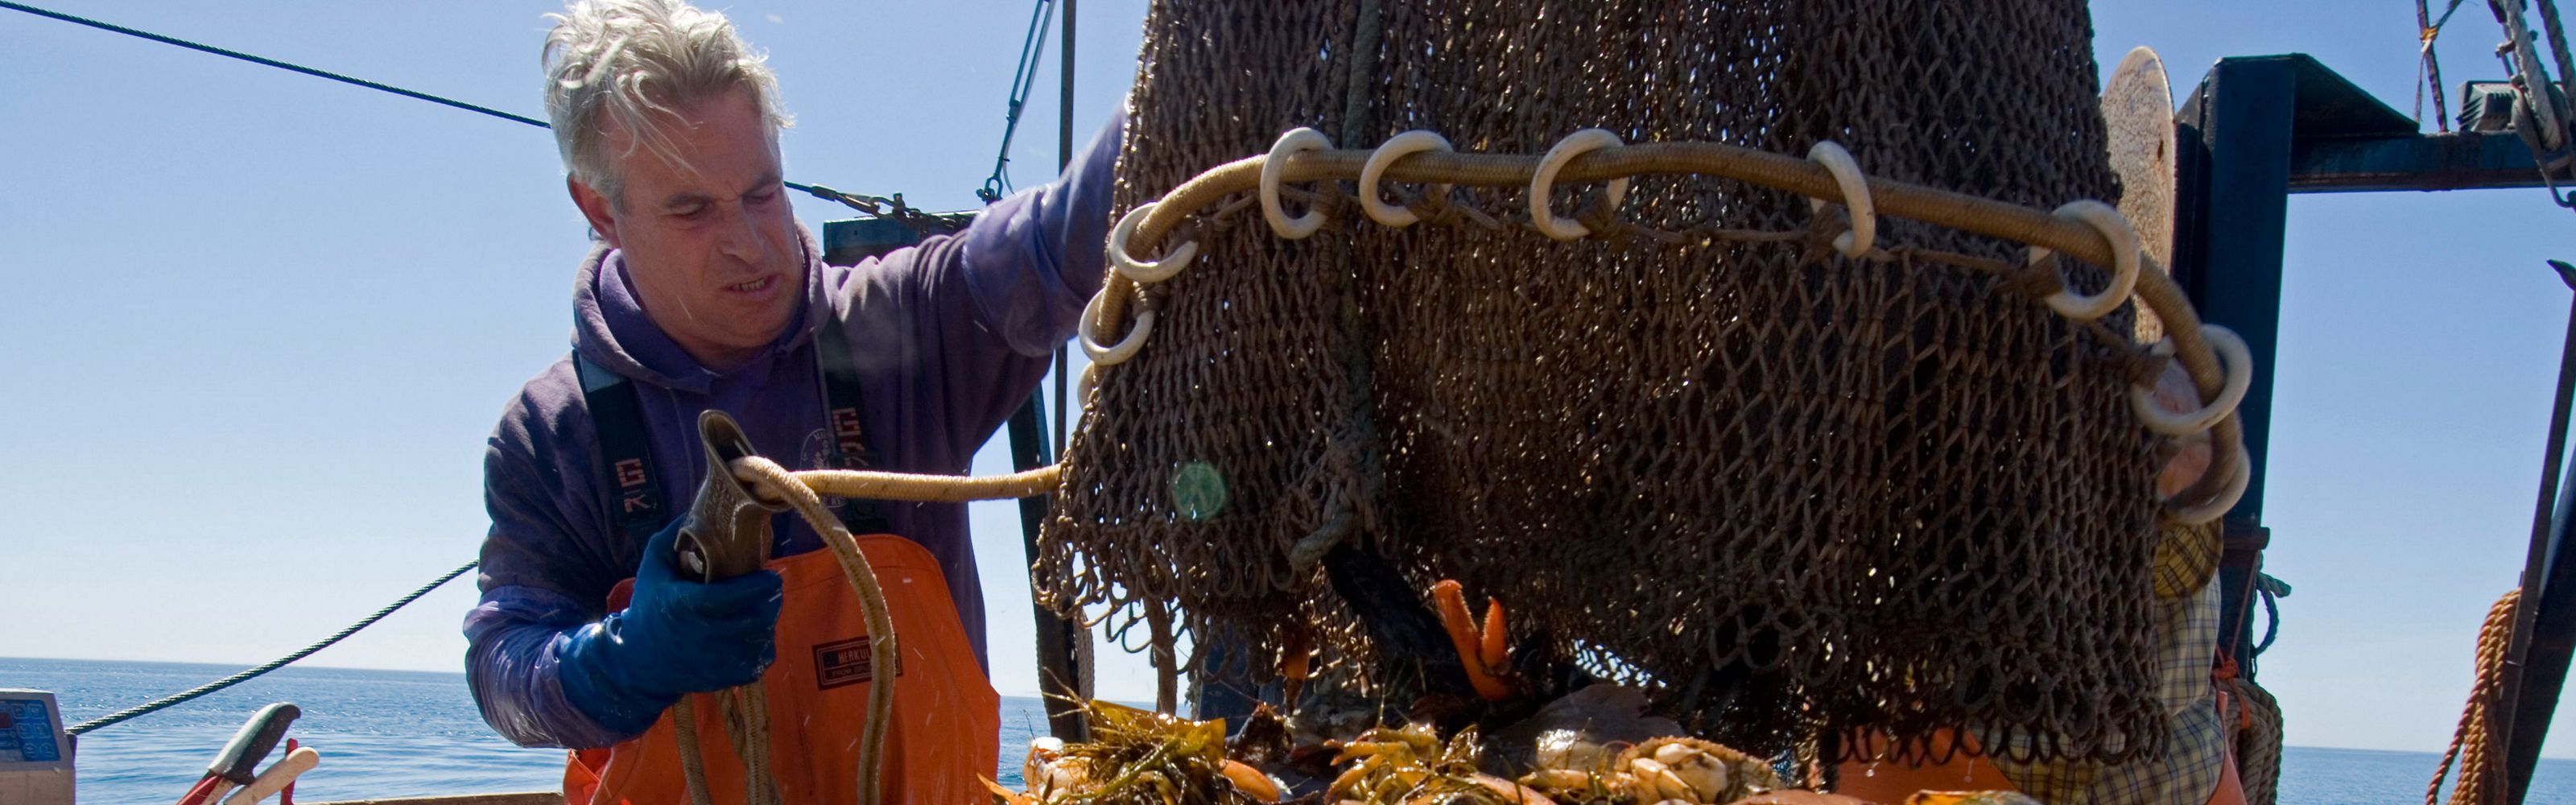 A fisherman checks his haul in the Gulf of Maine.